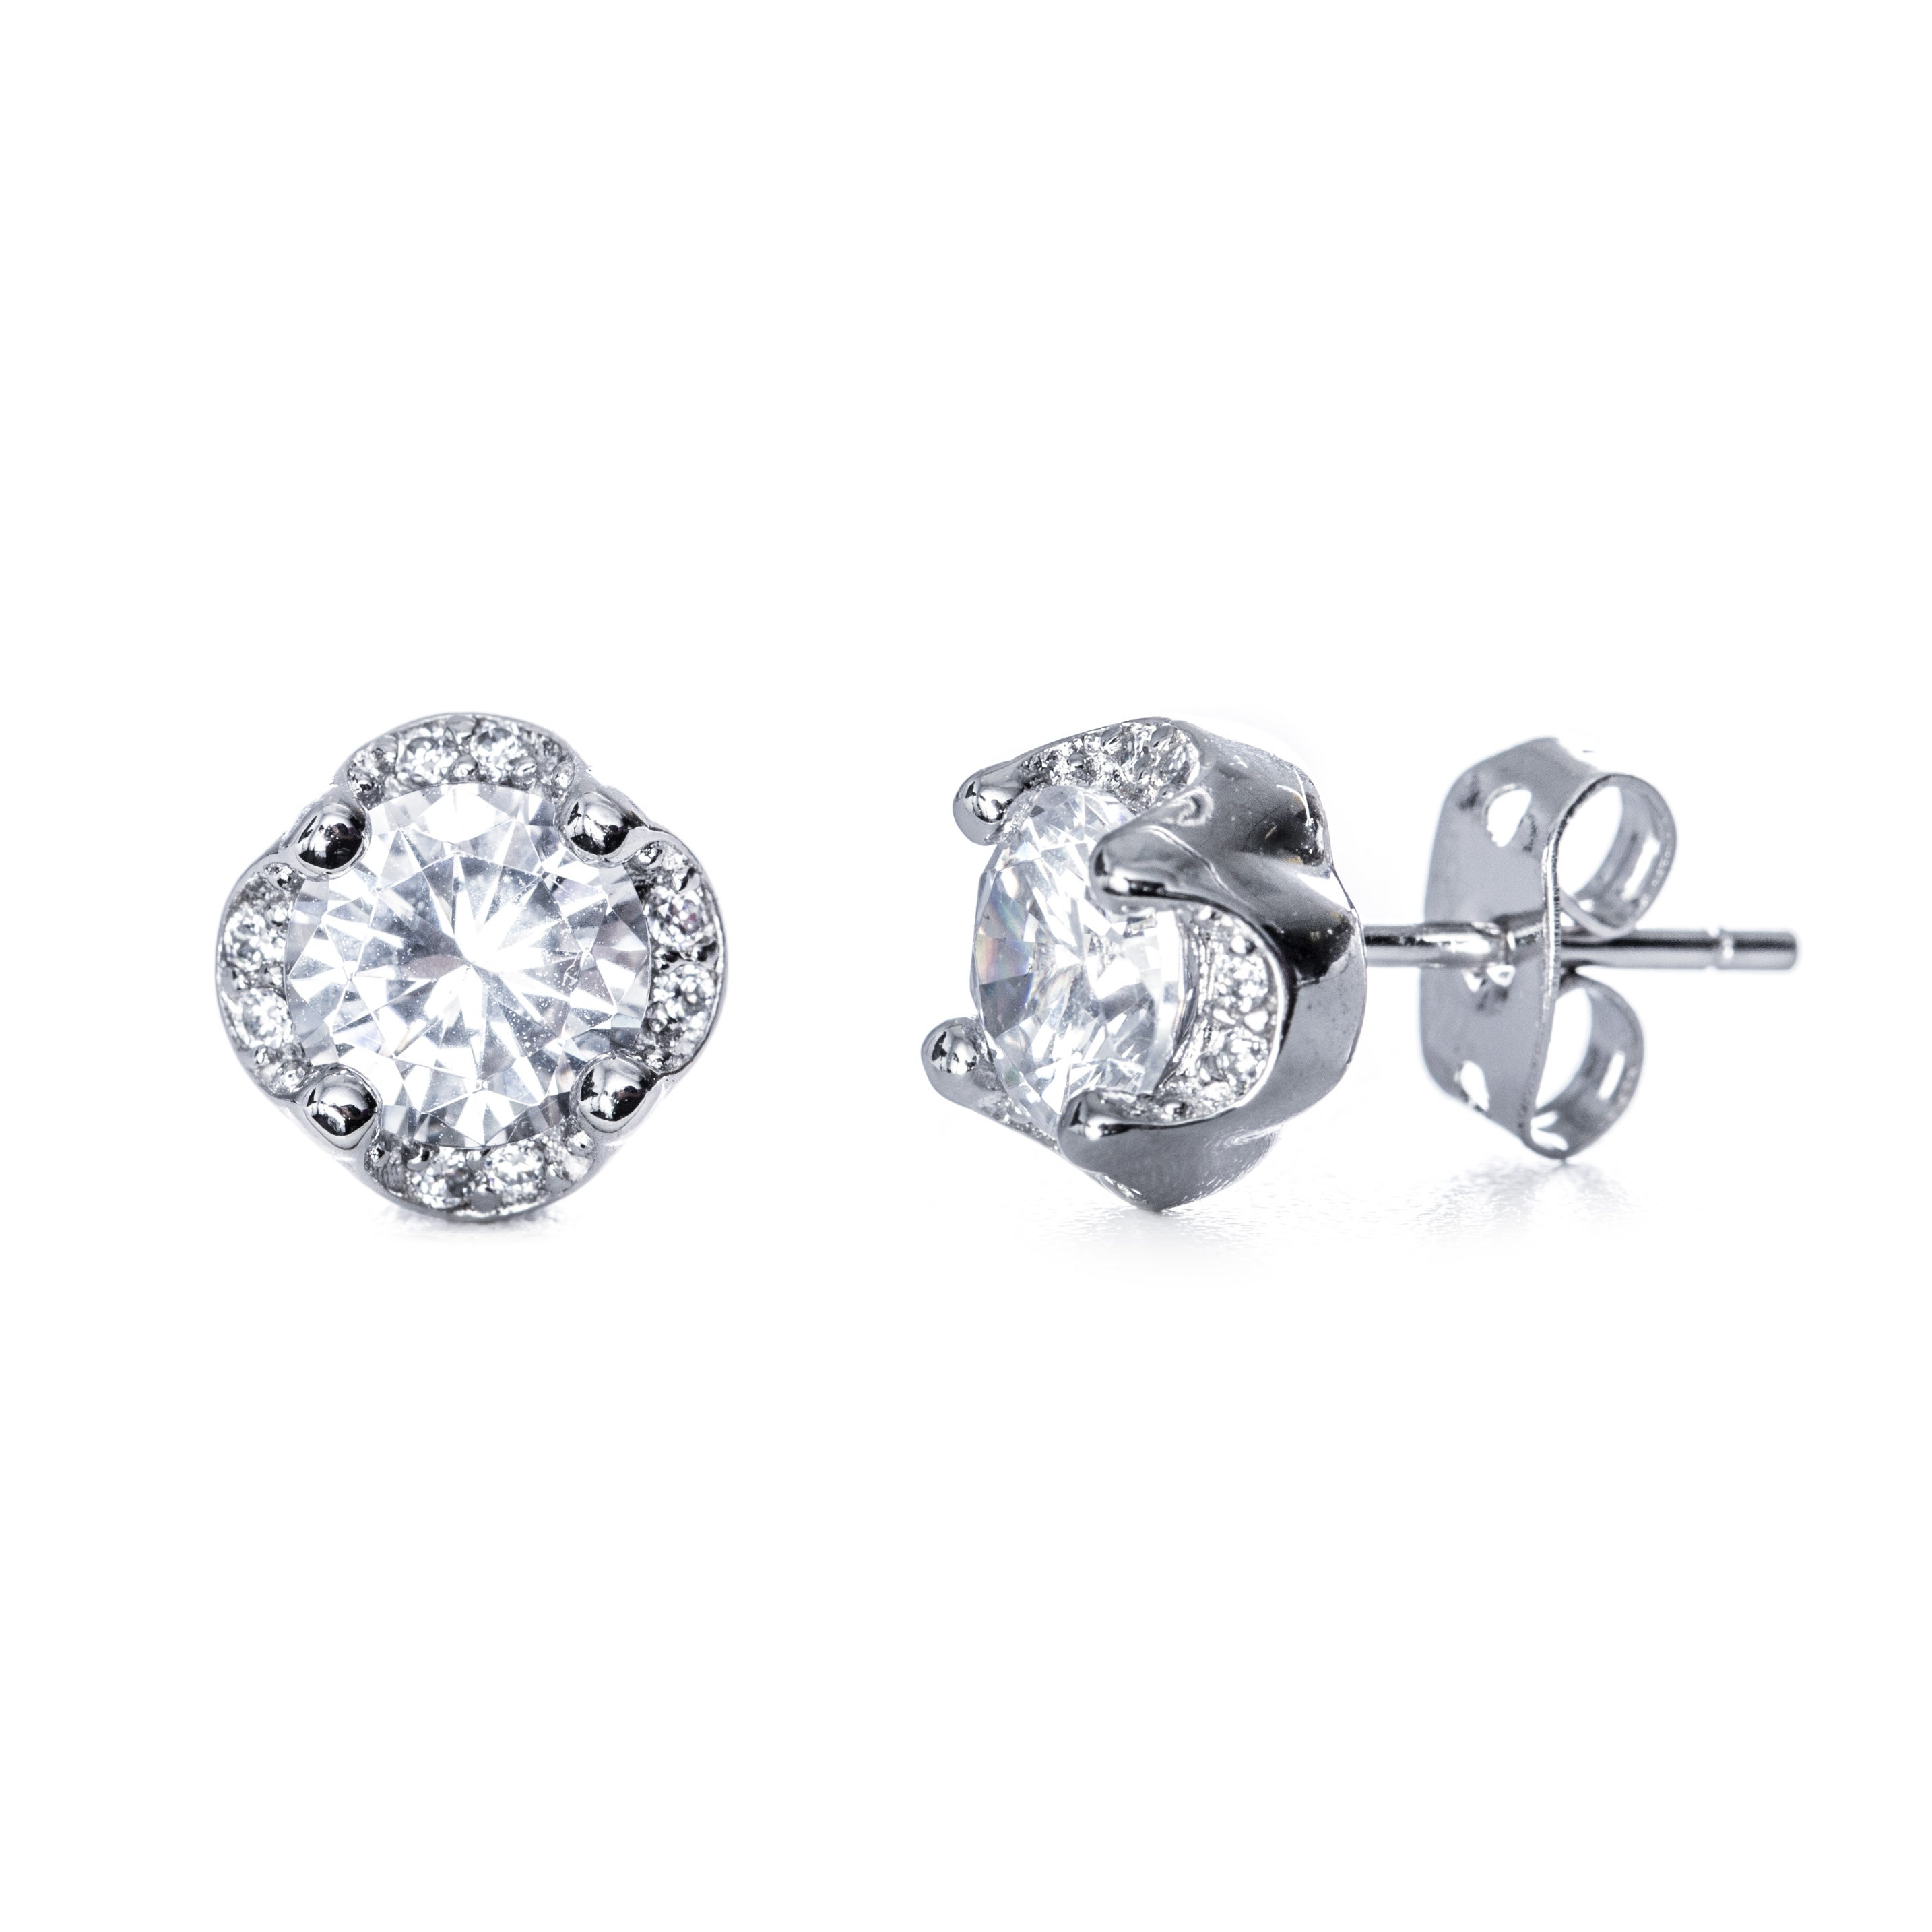 clover earrings studs clover cz stud earrings s addiction 174 3078